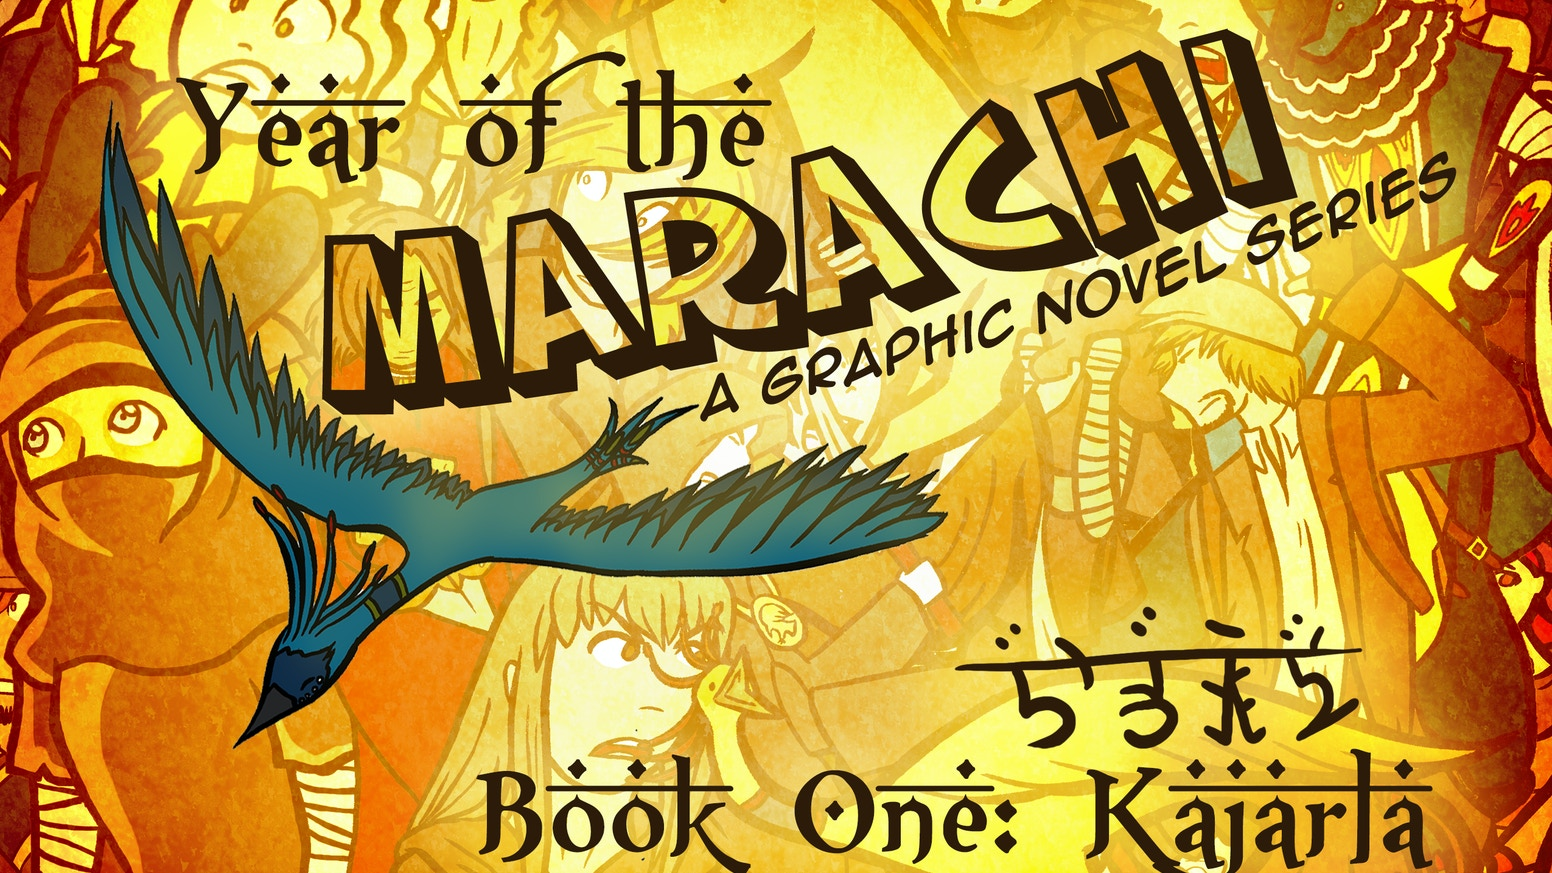 Year of the Marachi follows the story of a young slave girl in the 1930s and her journey to freedom and finding her place in the world.